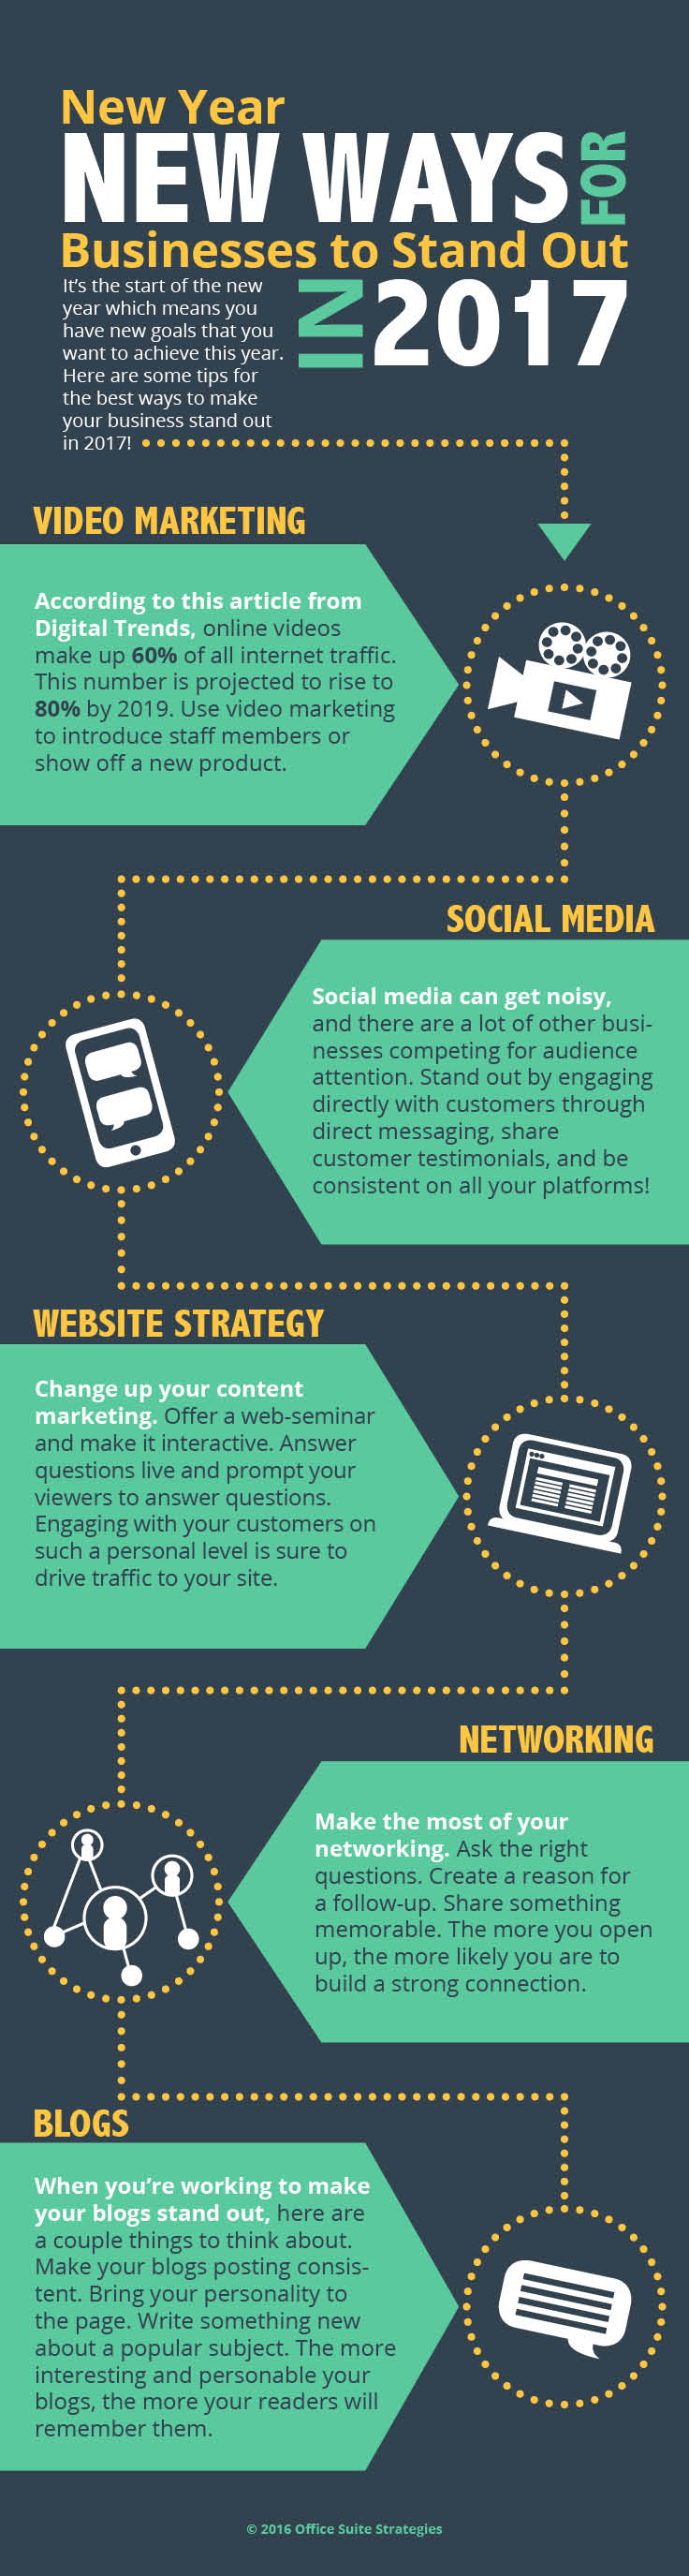 new-ways-to-stand-out-infographic